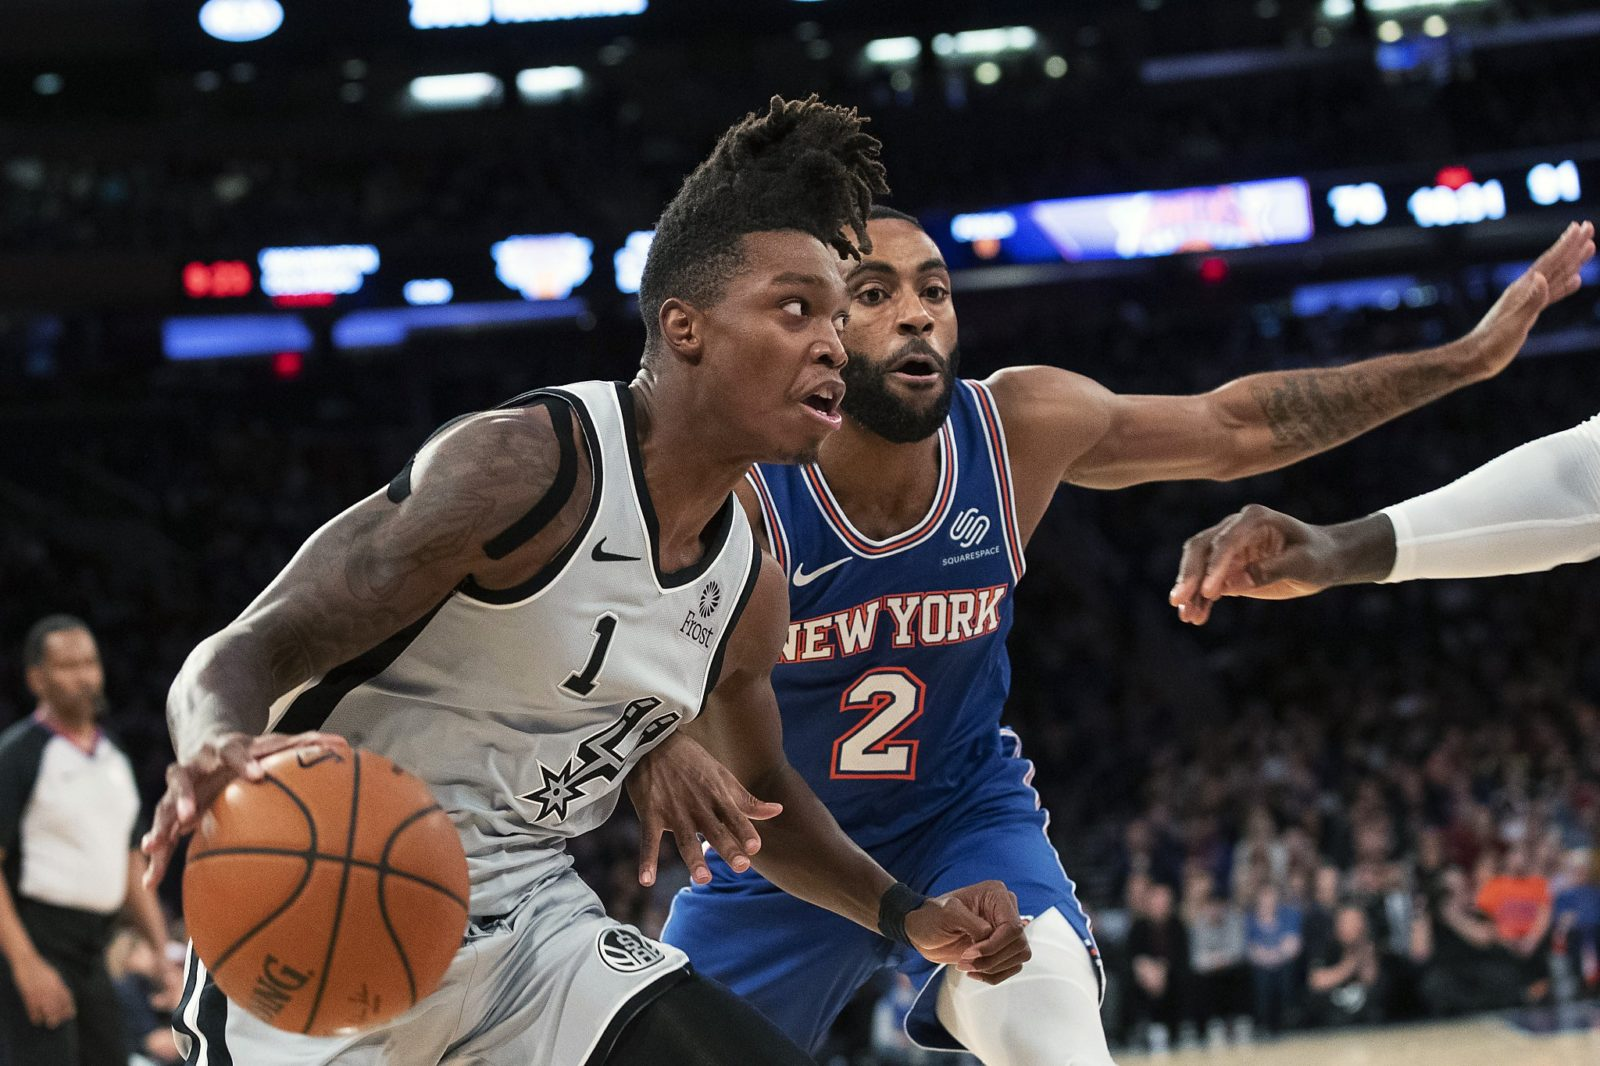 Latest Sports News: Lonnie Walker excelled as the Spurs' 'energy guy' in Wednesday's loss – mySA